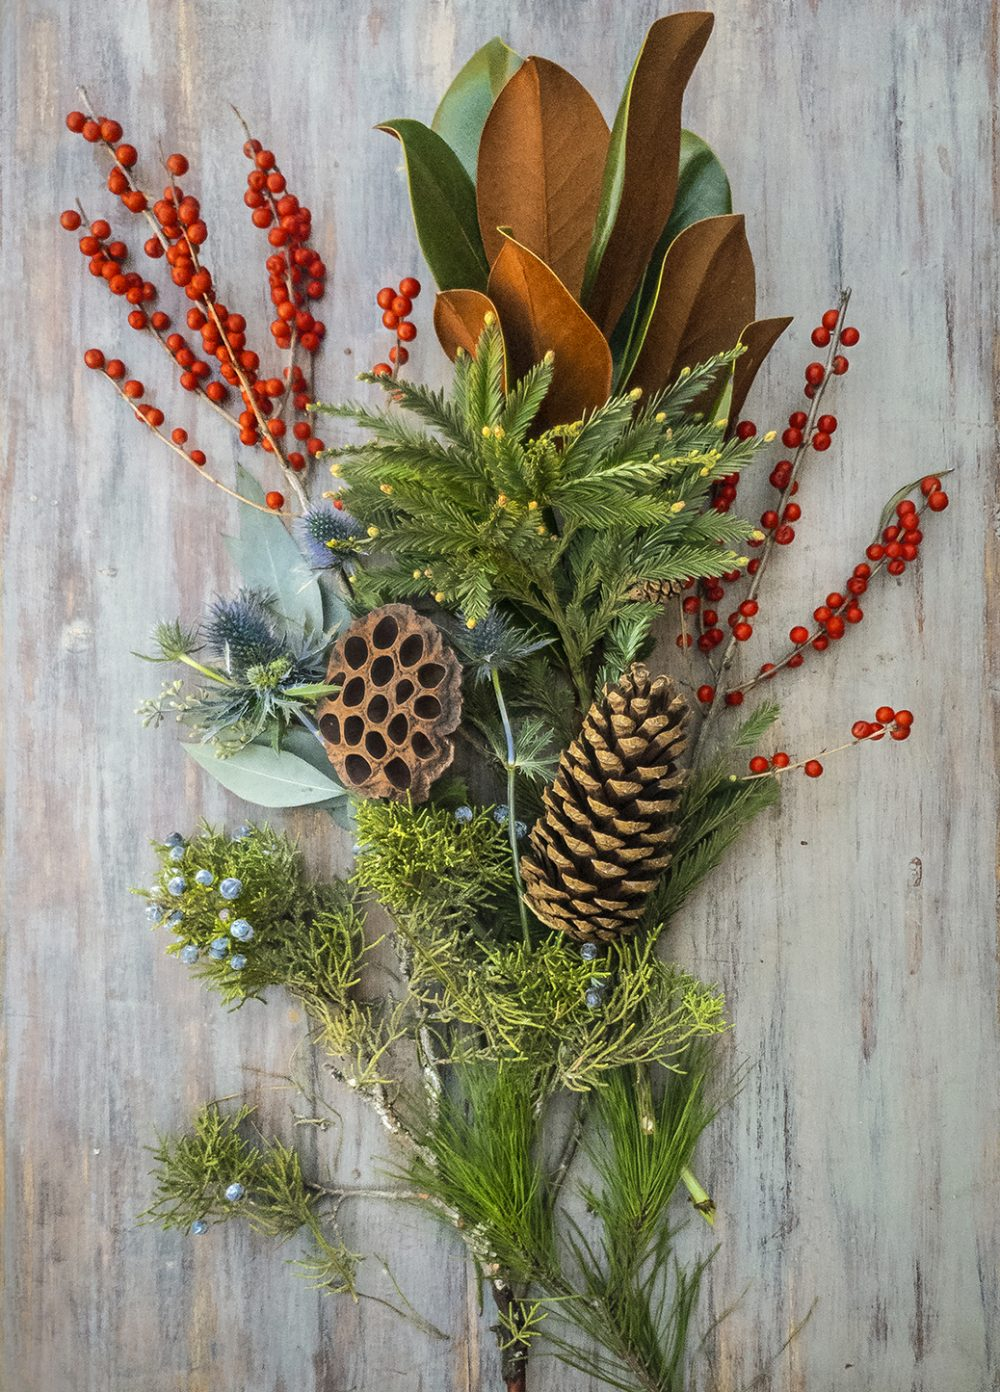 Holiday flower arranging class in long and low style with evergreens, berries, and botanical accents.